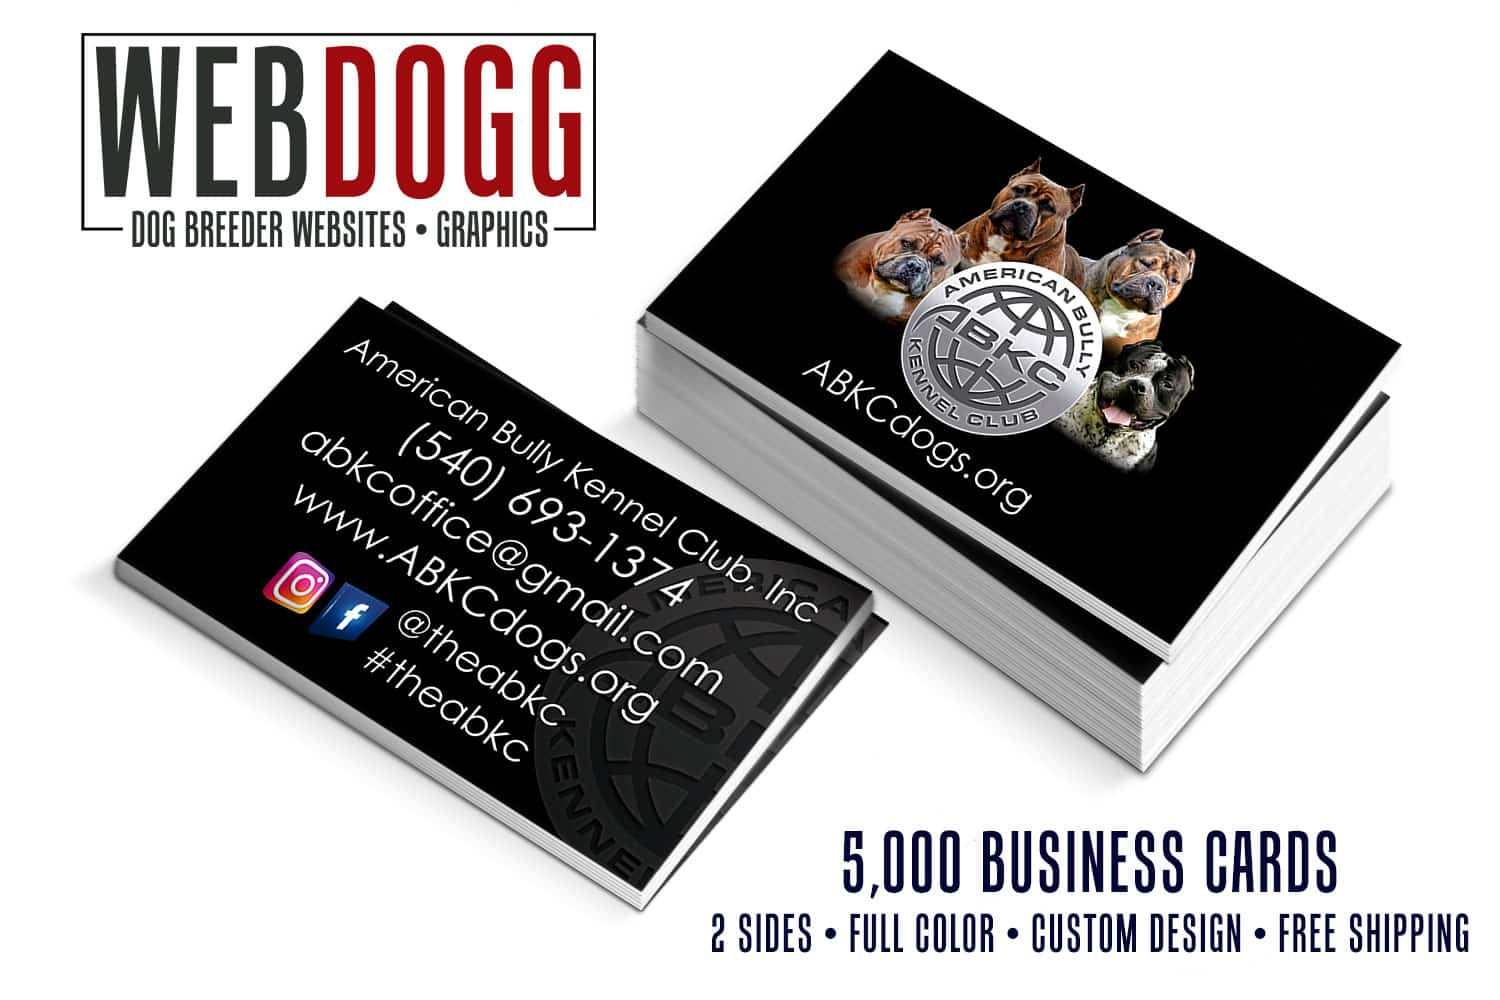 Dog business cards kennel business cards printing 1000 dog breeder business cards 99 reheart Gallery